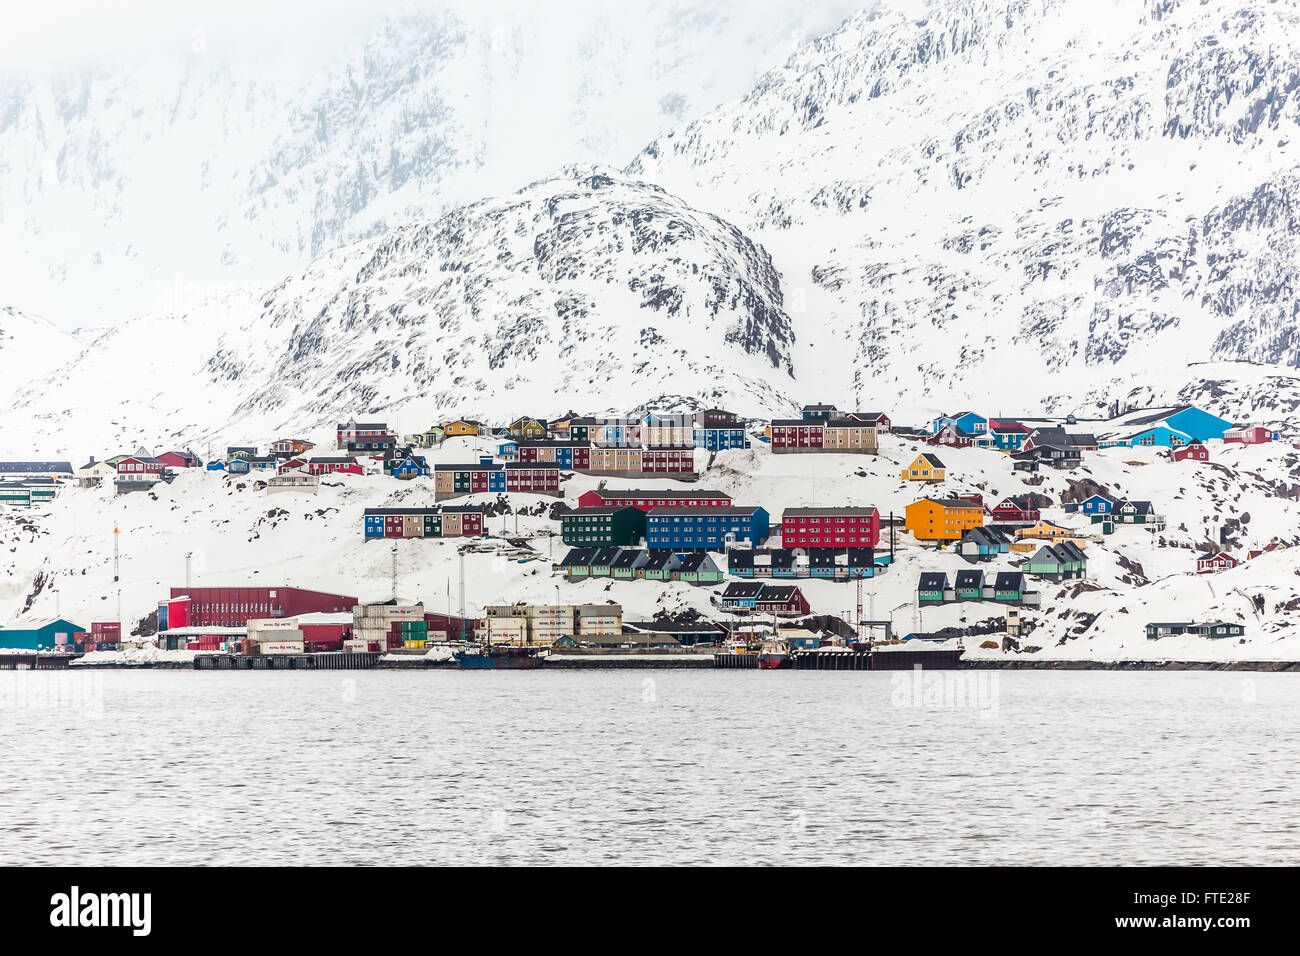 port of Sisimiut the 2nd largest Greenlandic city, Greenland May 2015 Stock Photo